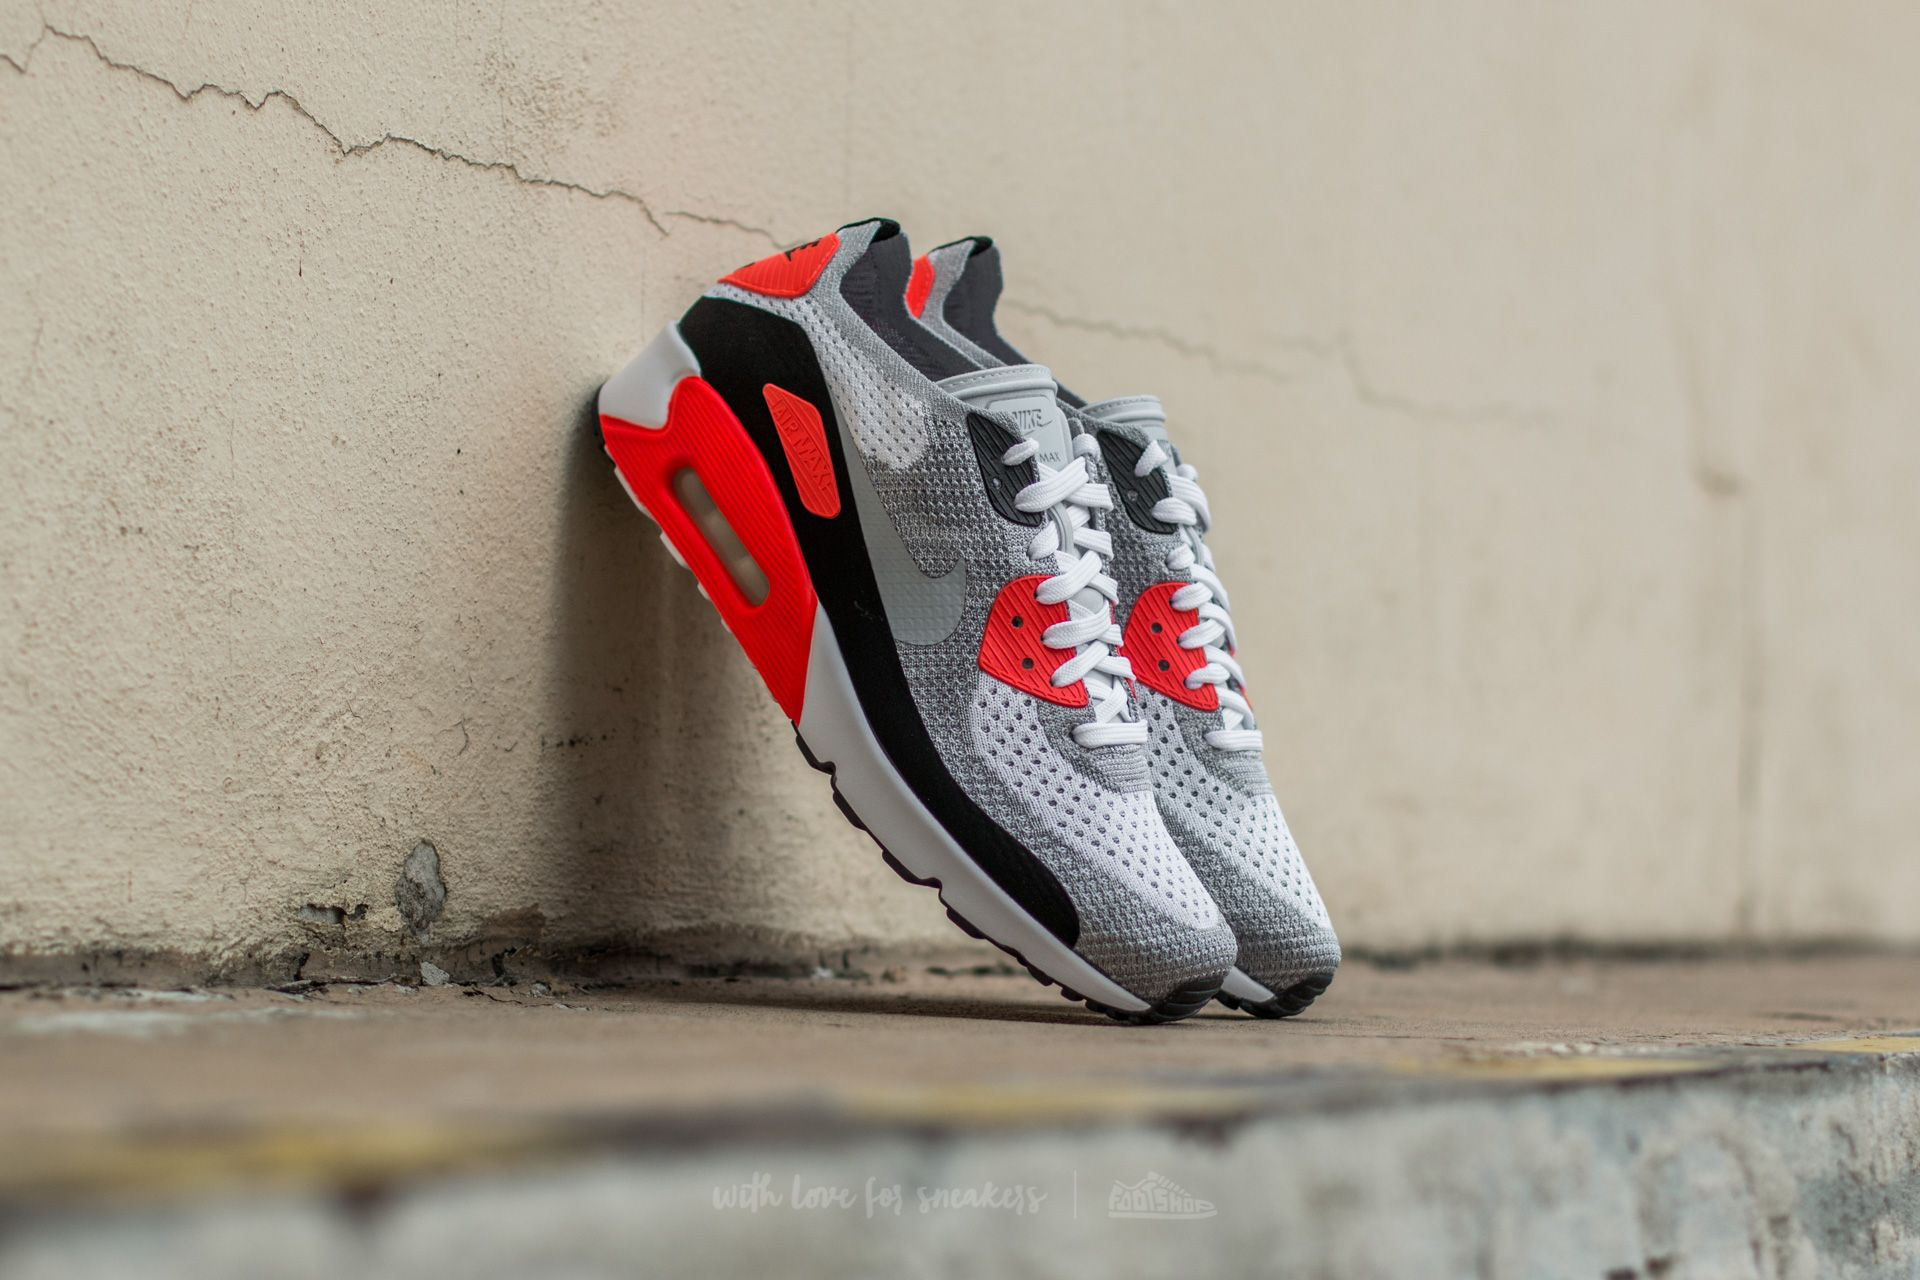 Nike Air Max 90 Ultra 2.0 Flyknit White/ Wolf Grey-Bright Crimson